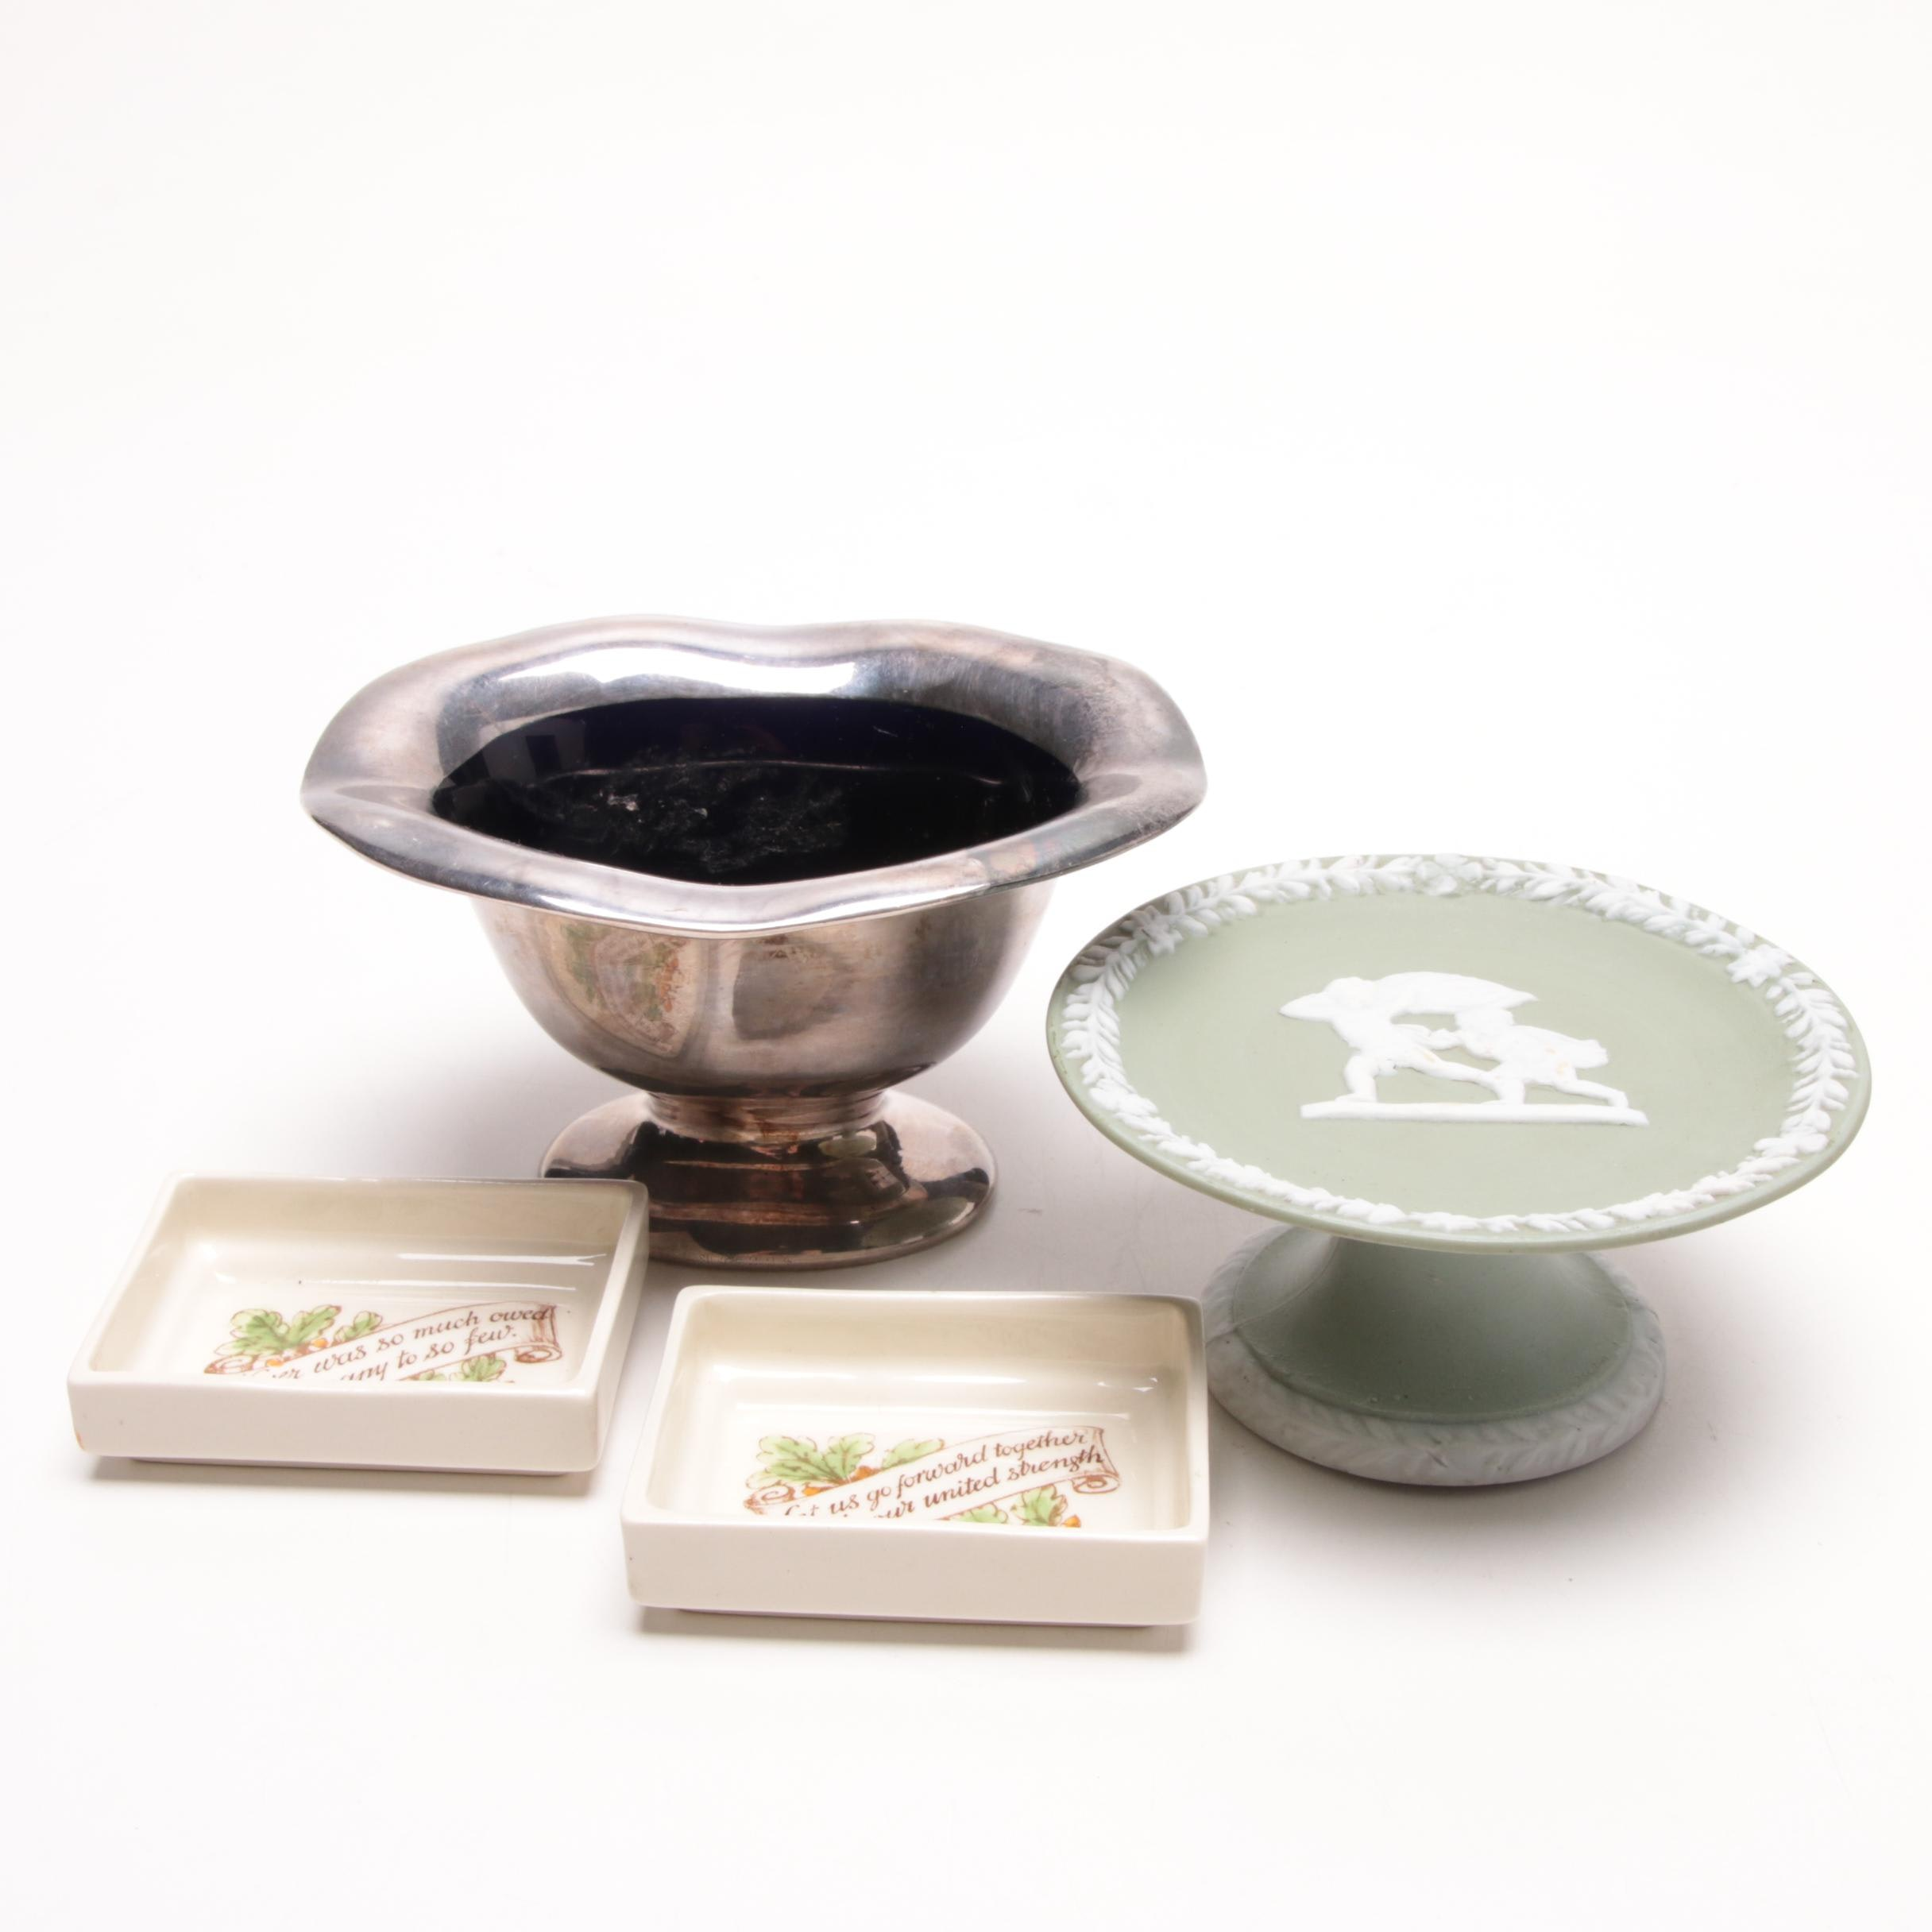 Tableware Featuring Lenox Candy Dish and Royal Doulton Finger Bowls